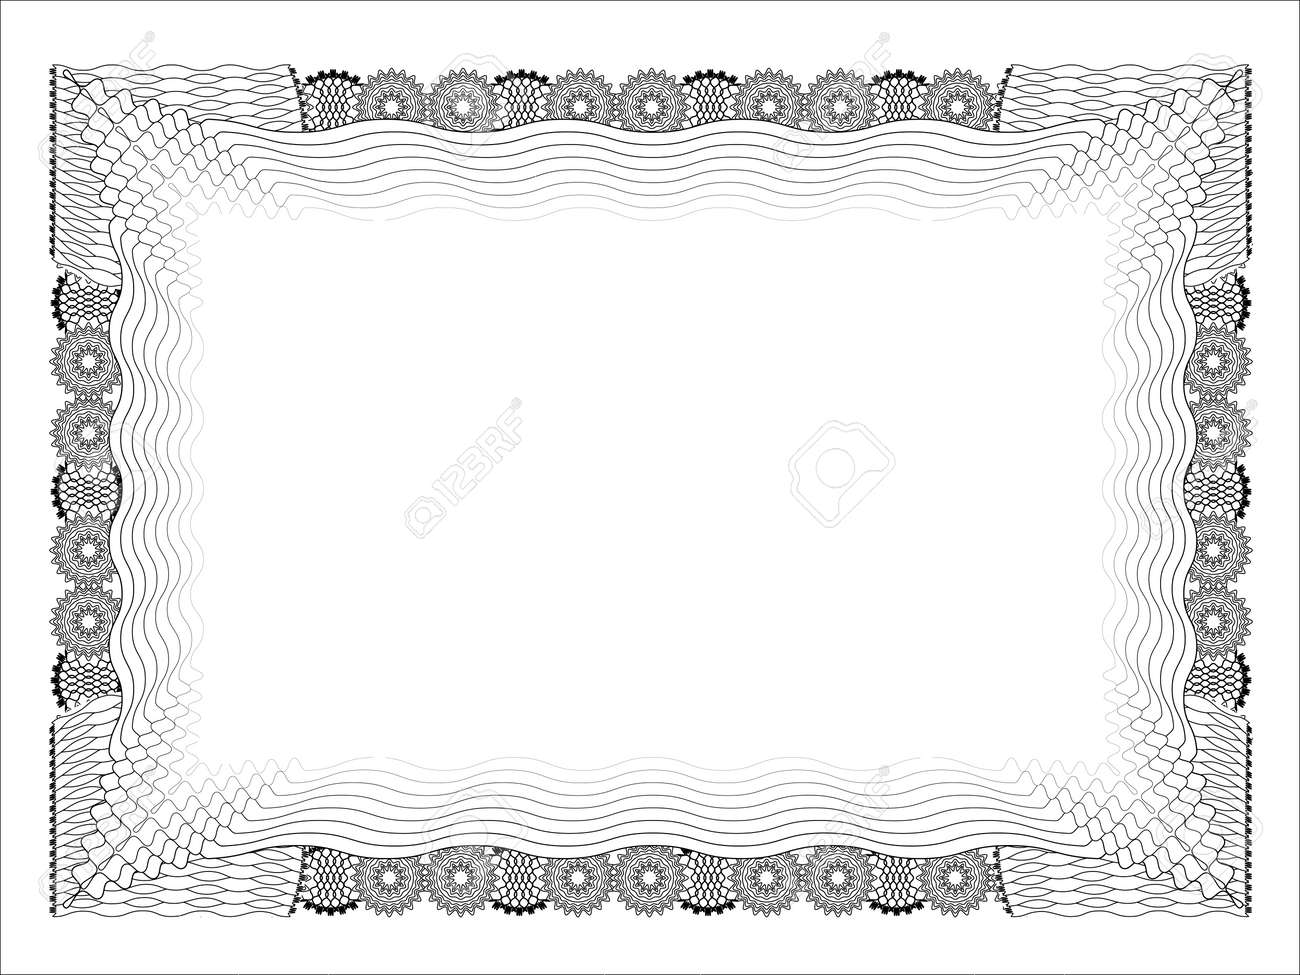 Blank Certificates Free Printable Documents certificate – Blank Share Certificates